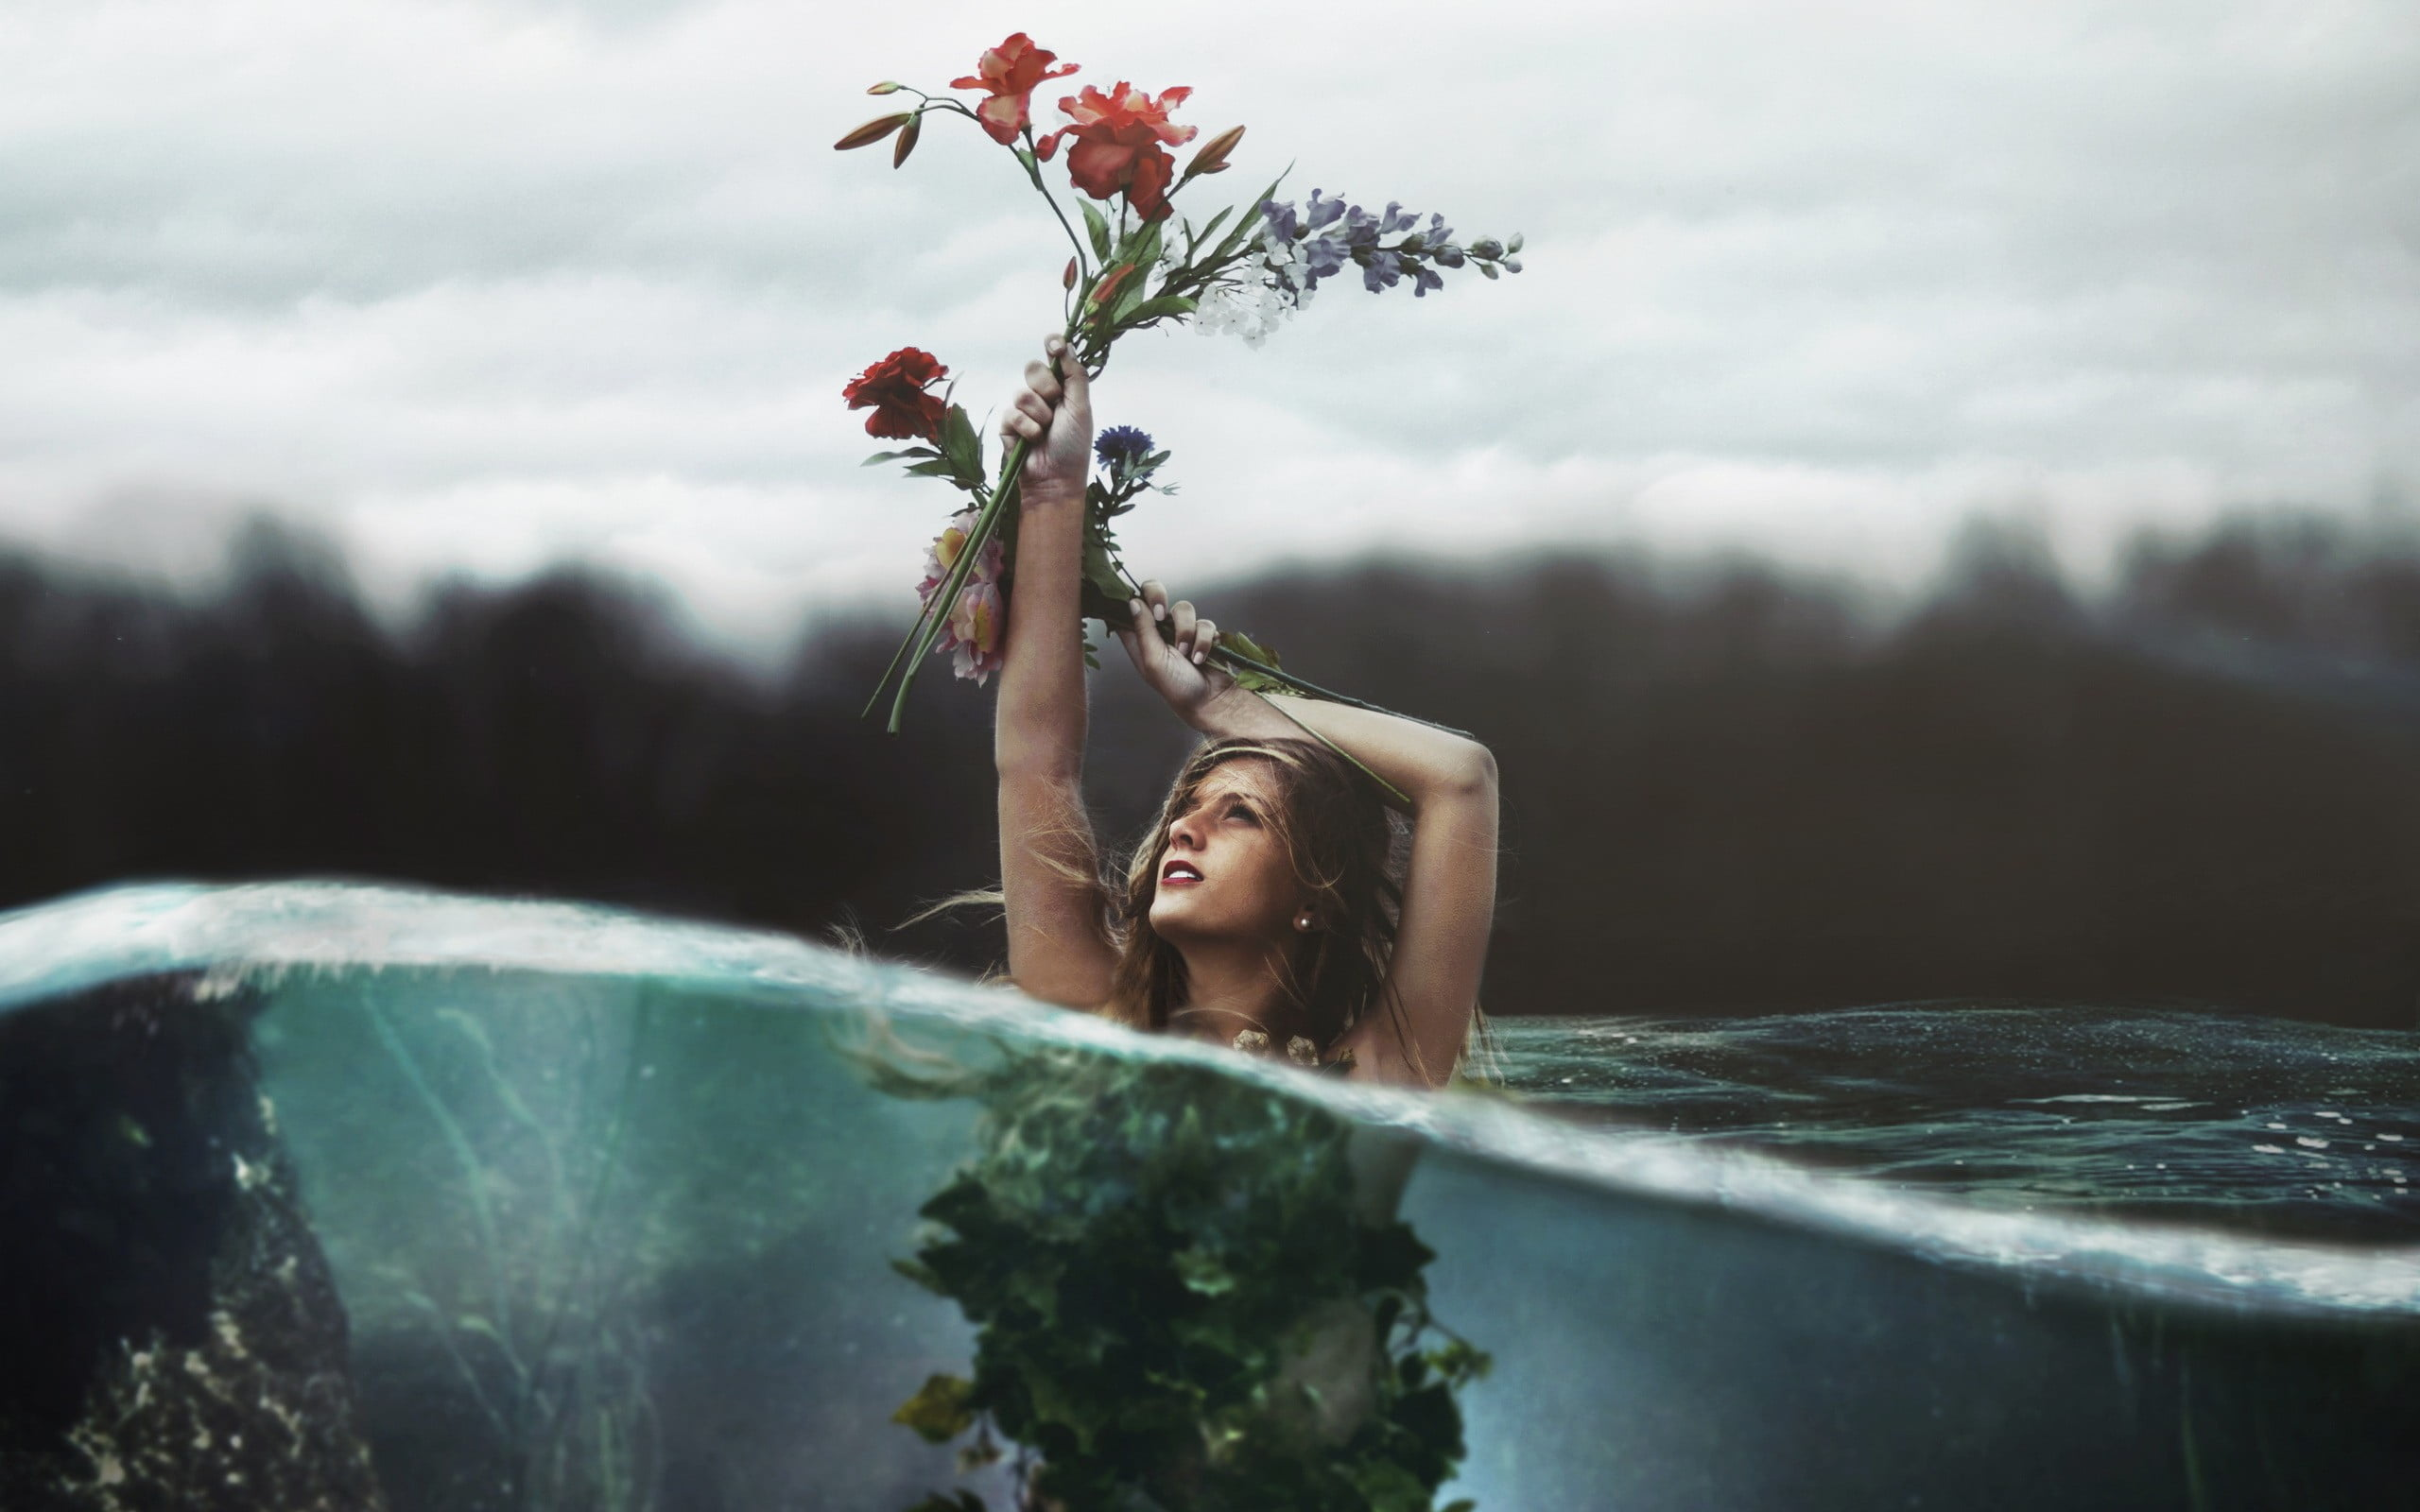 Woman half submerged in water holding up a red flower half 2560x1600